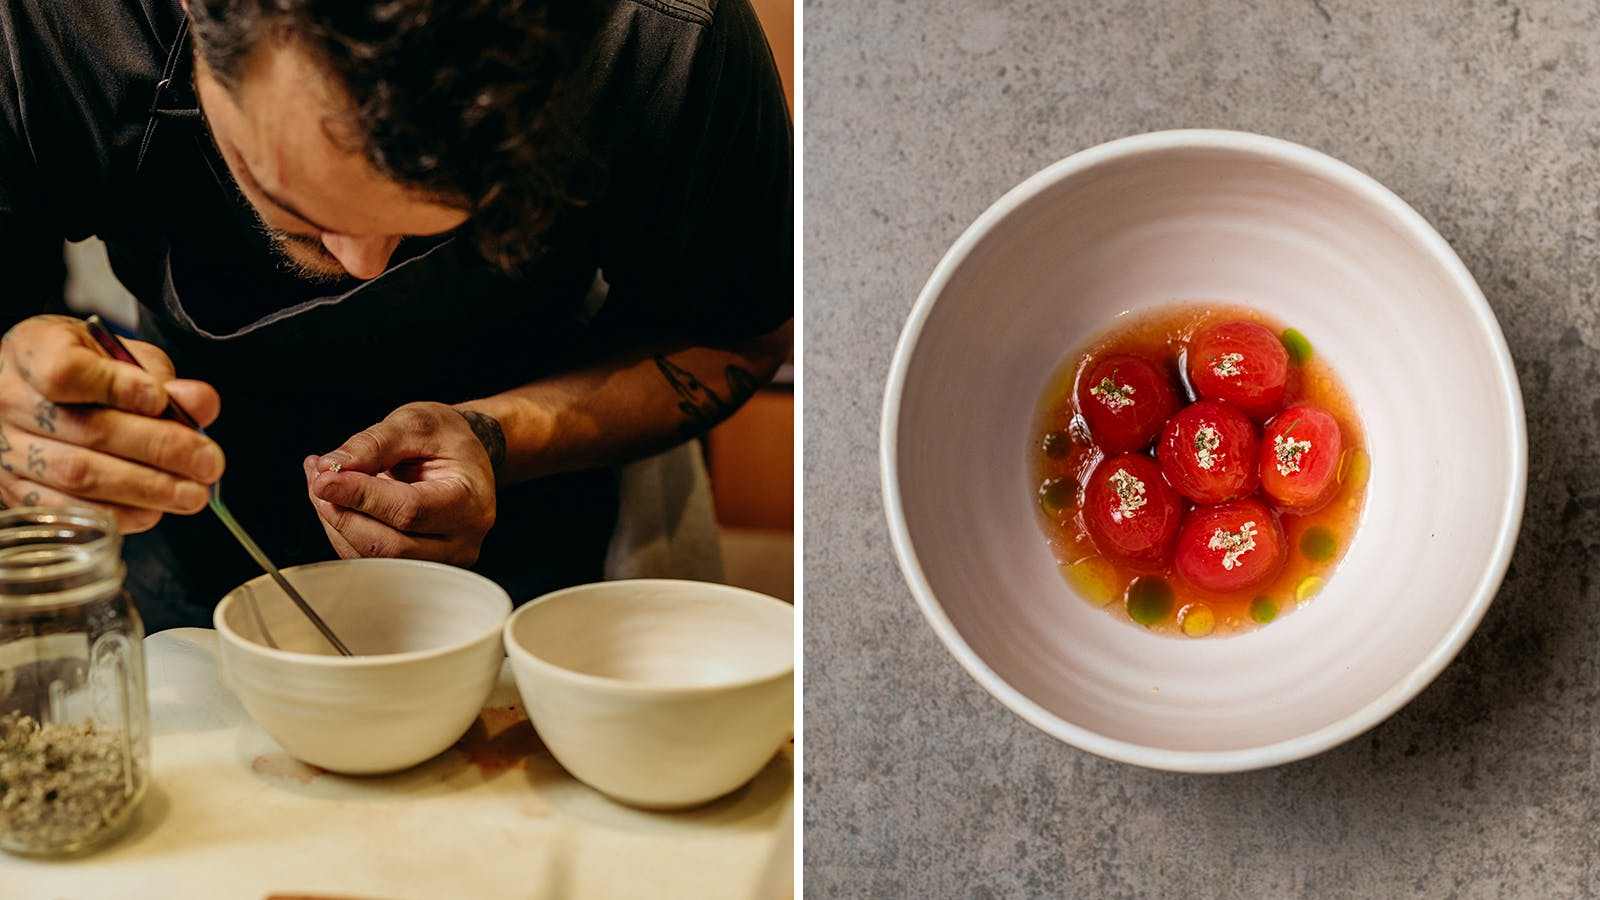 Grand Award Winner Canlis' Former Chef Opens Tomo in Seattle